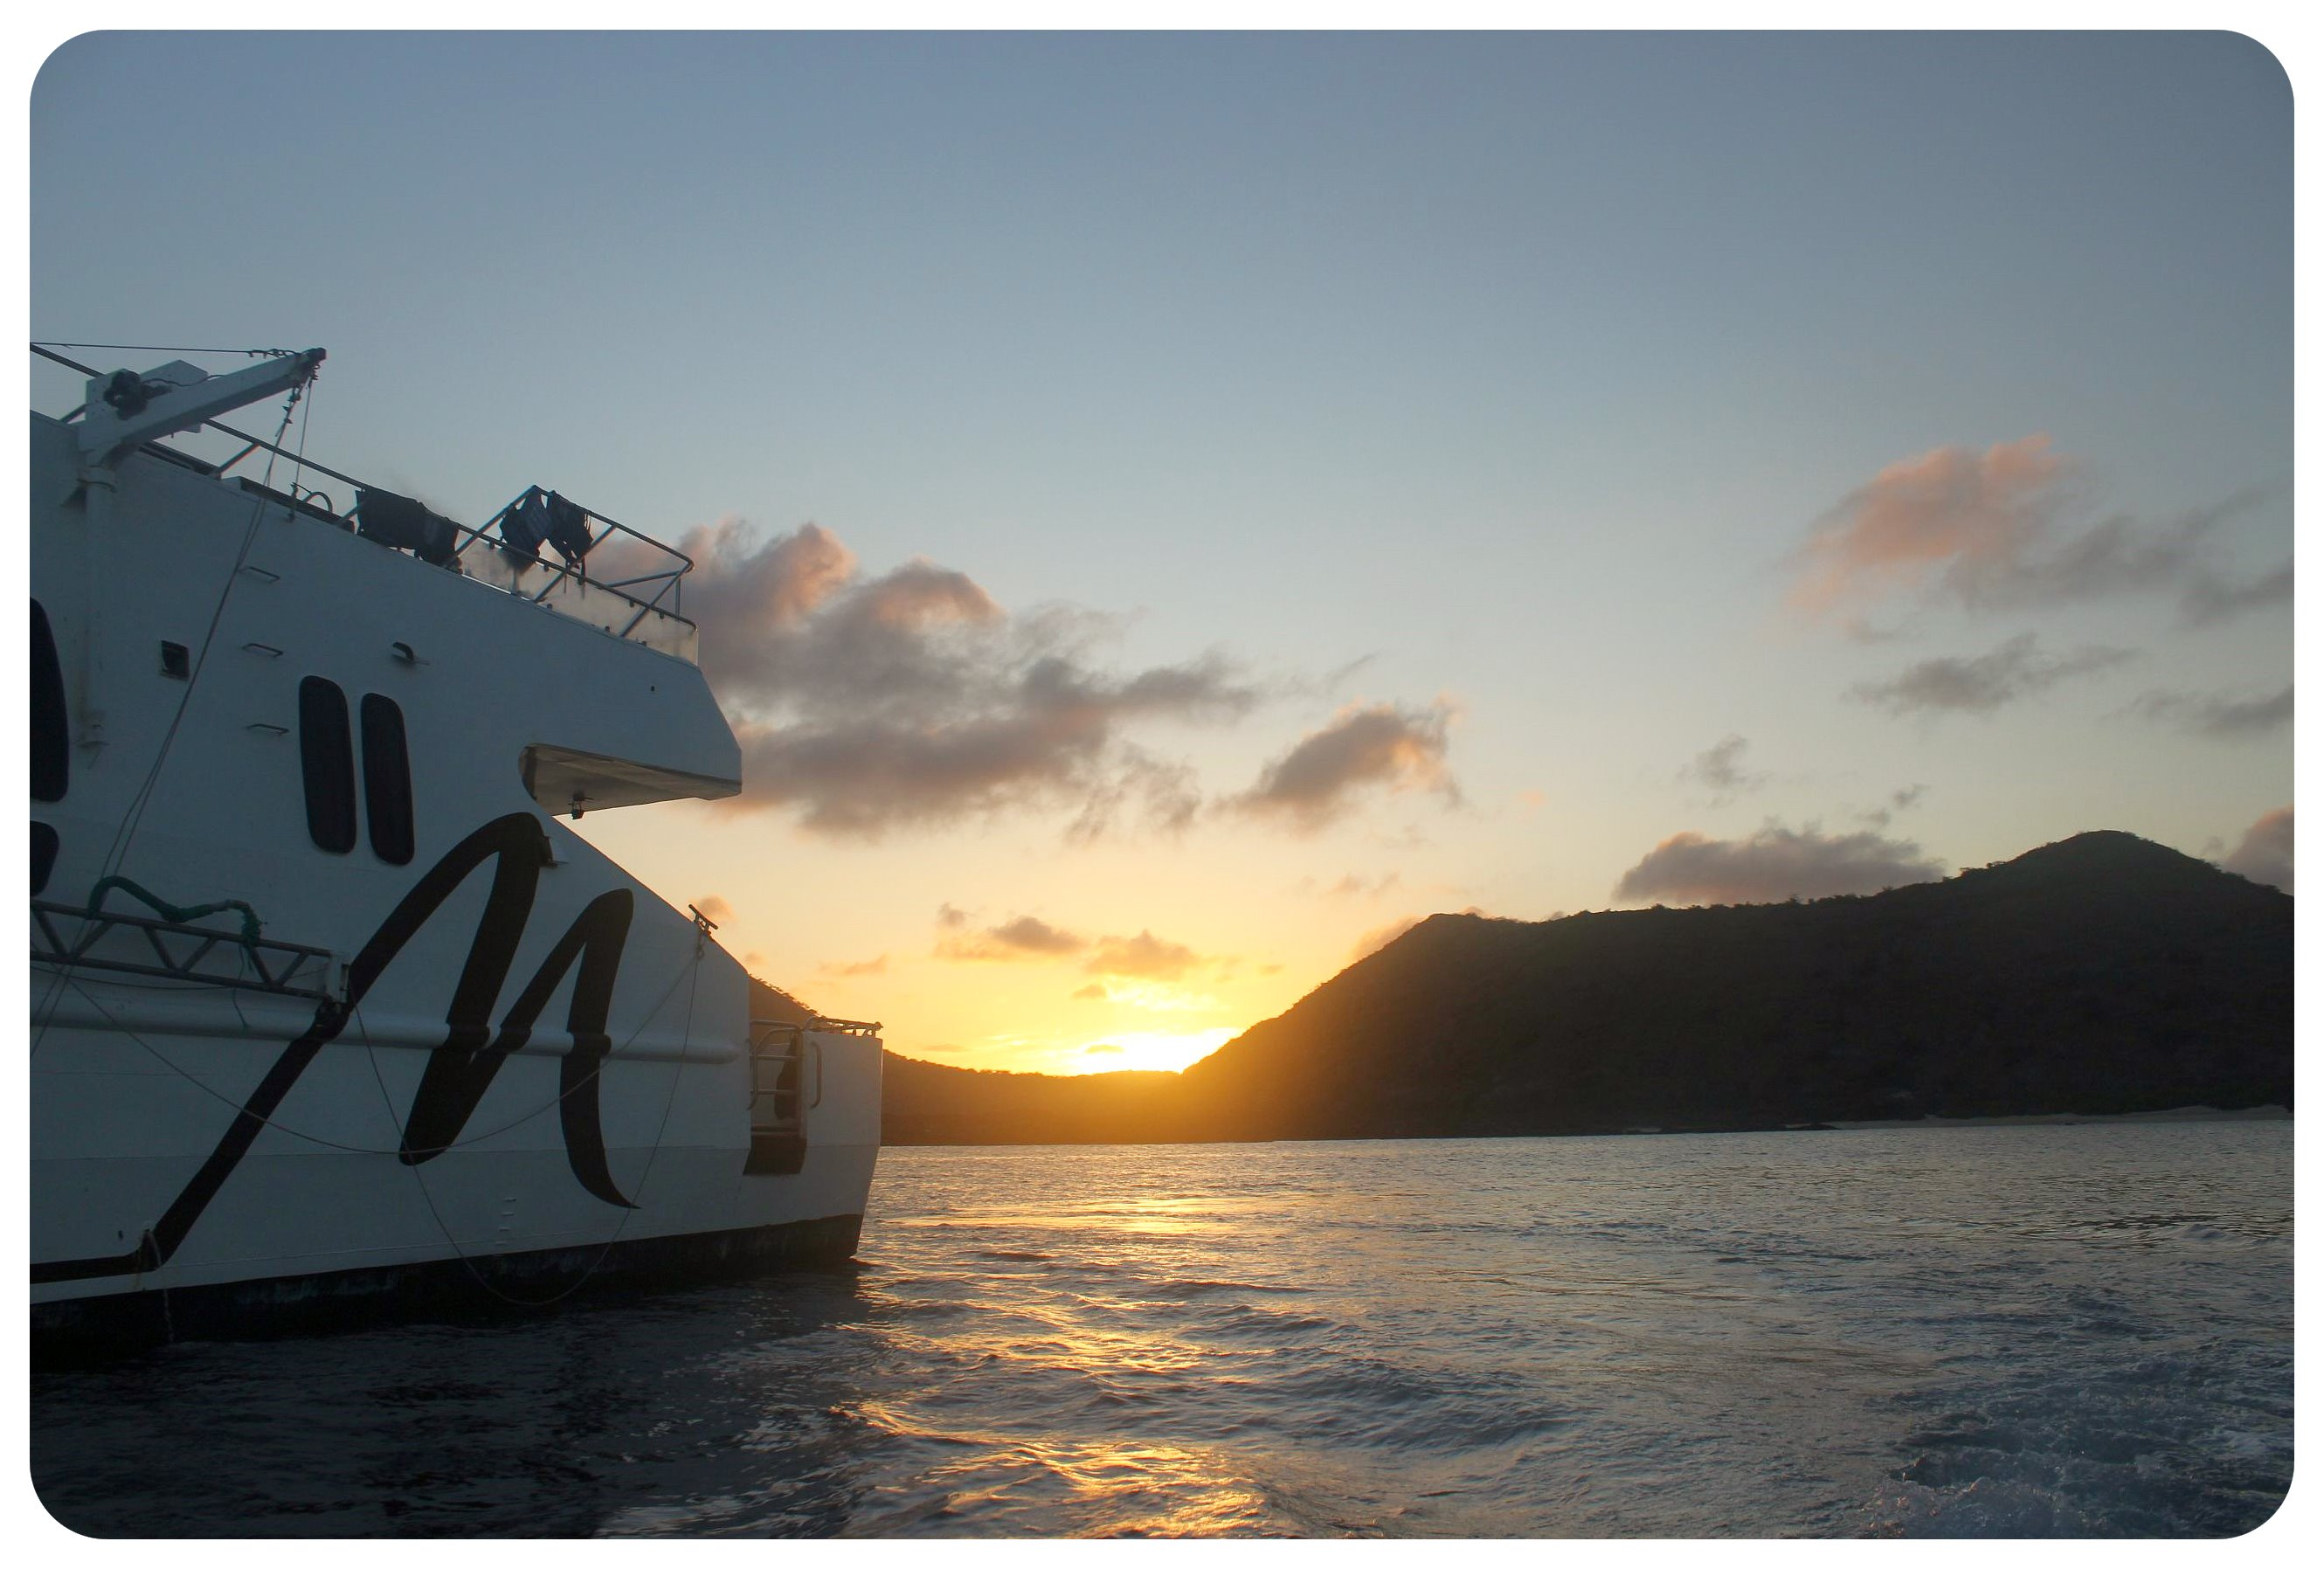 galapagos majestic yacht at sunset